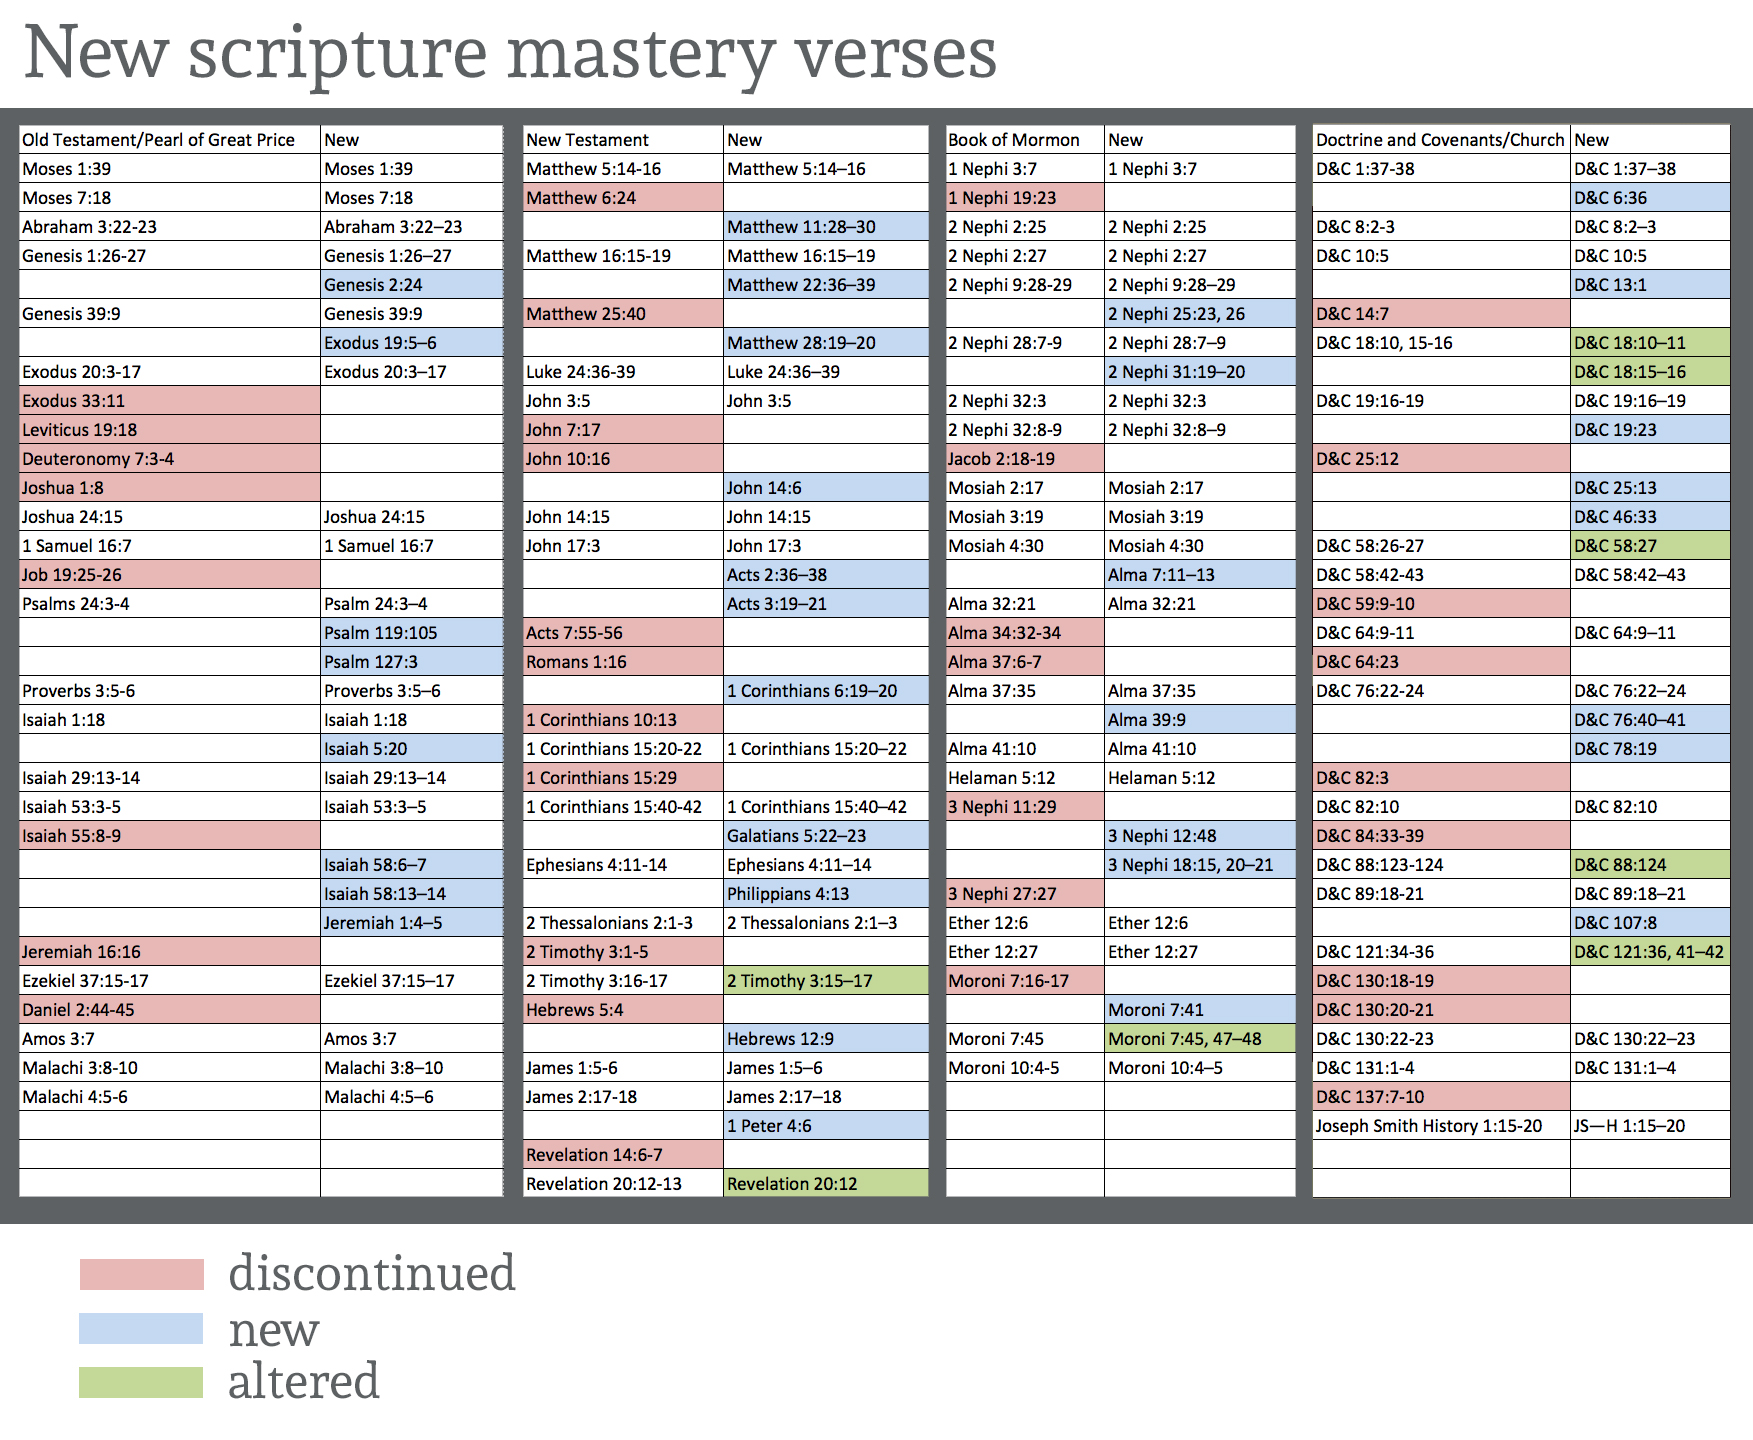 New scripture mastery passages announced for LDS ...